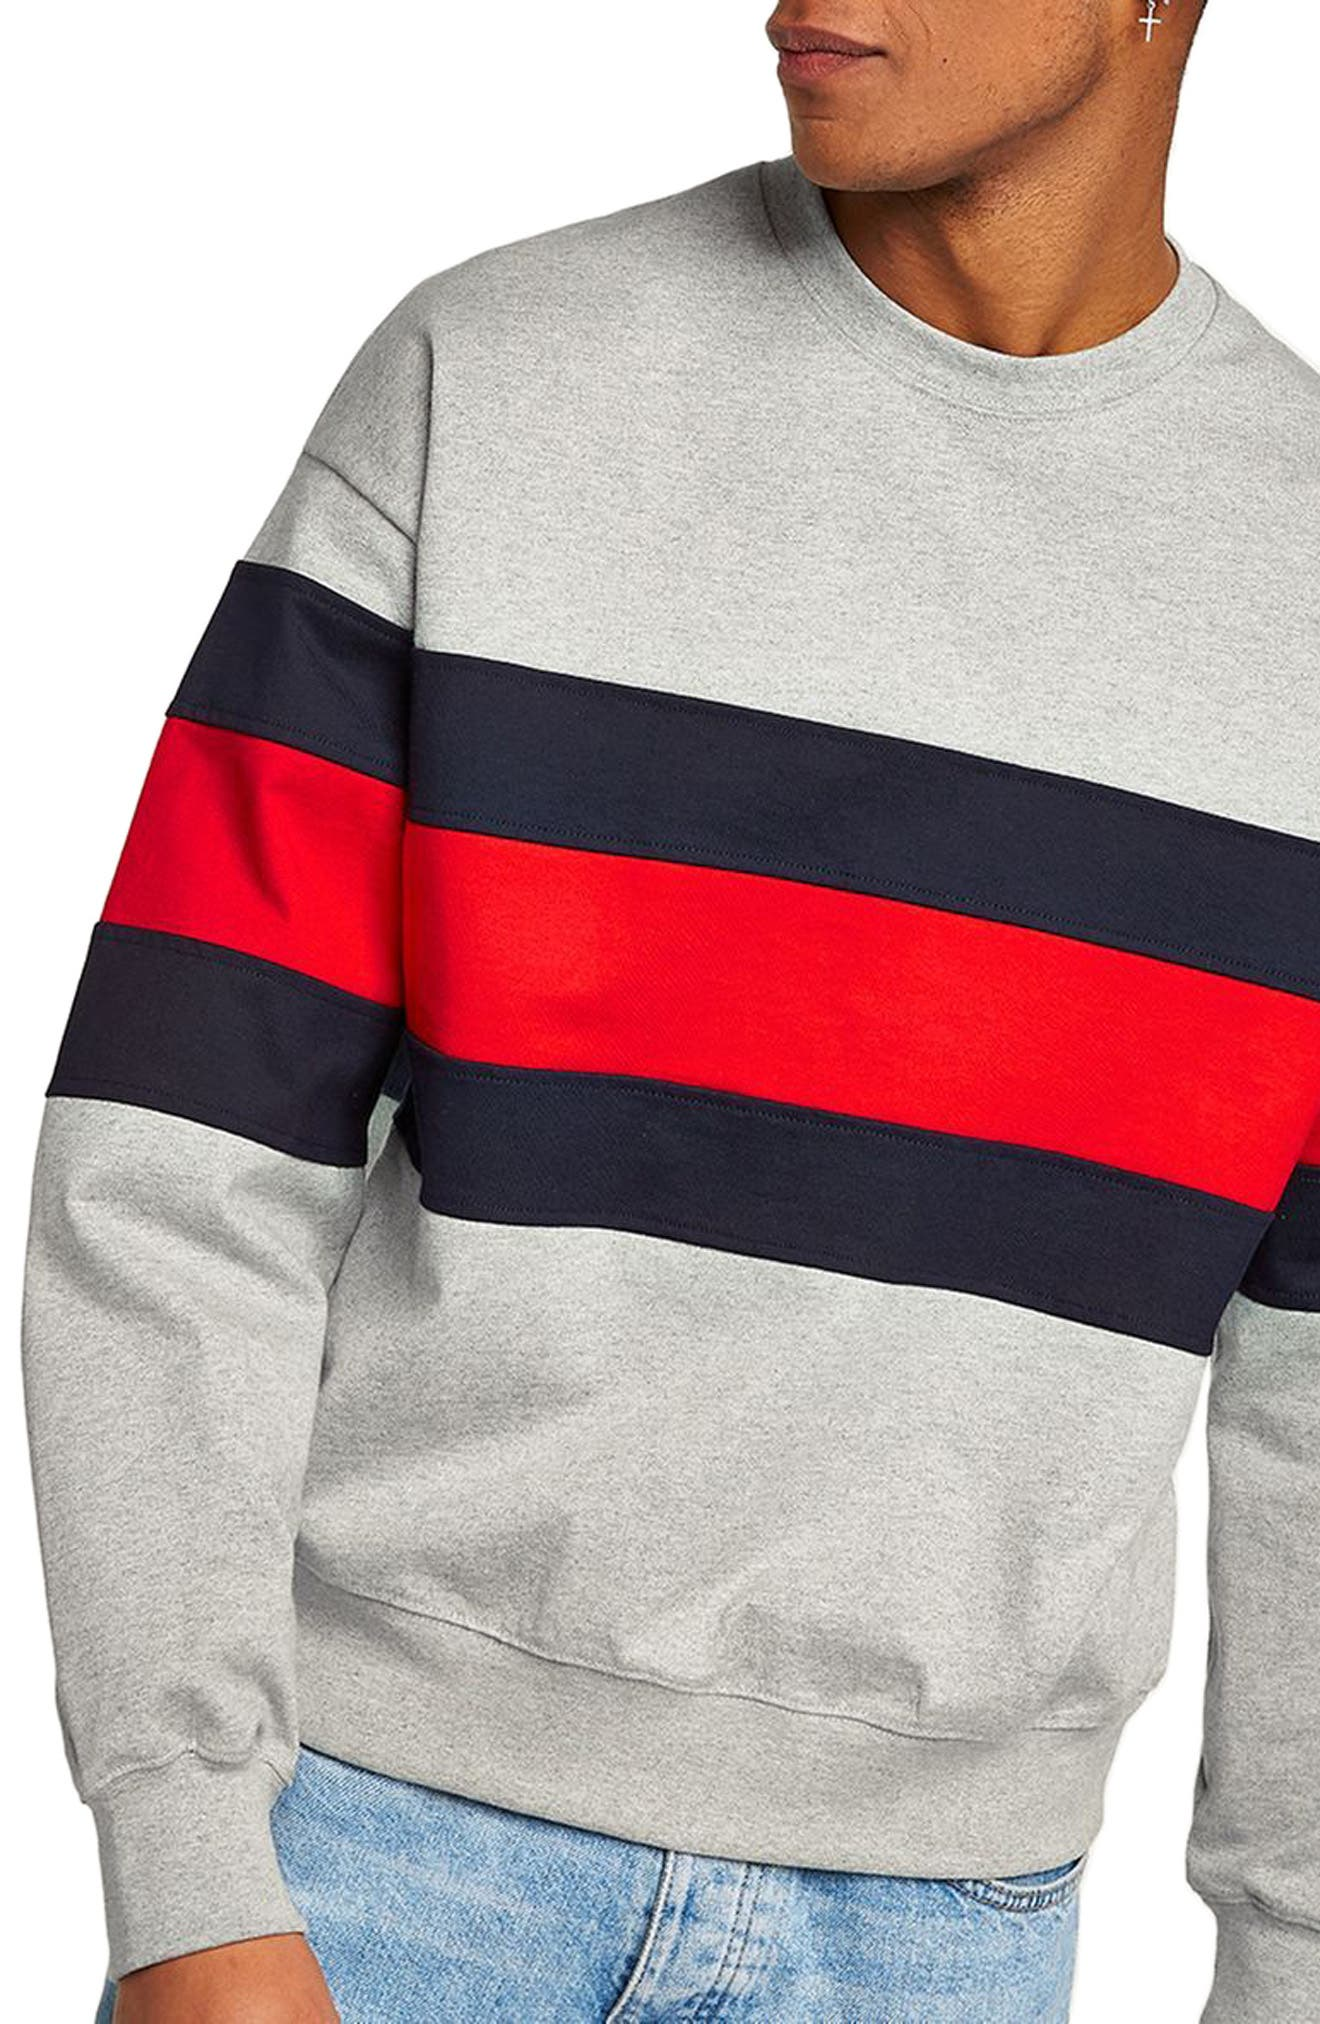 Classic Fit Striped Sweatshirt,                             Main thumbnail 1, color,                             LIGHT GREY MULTI